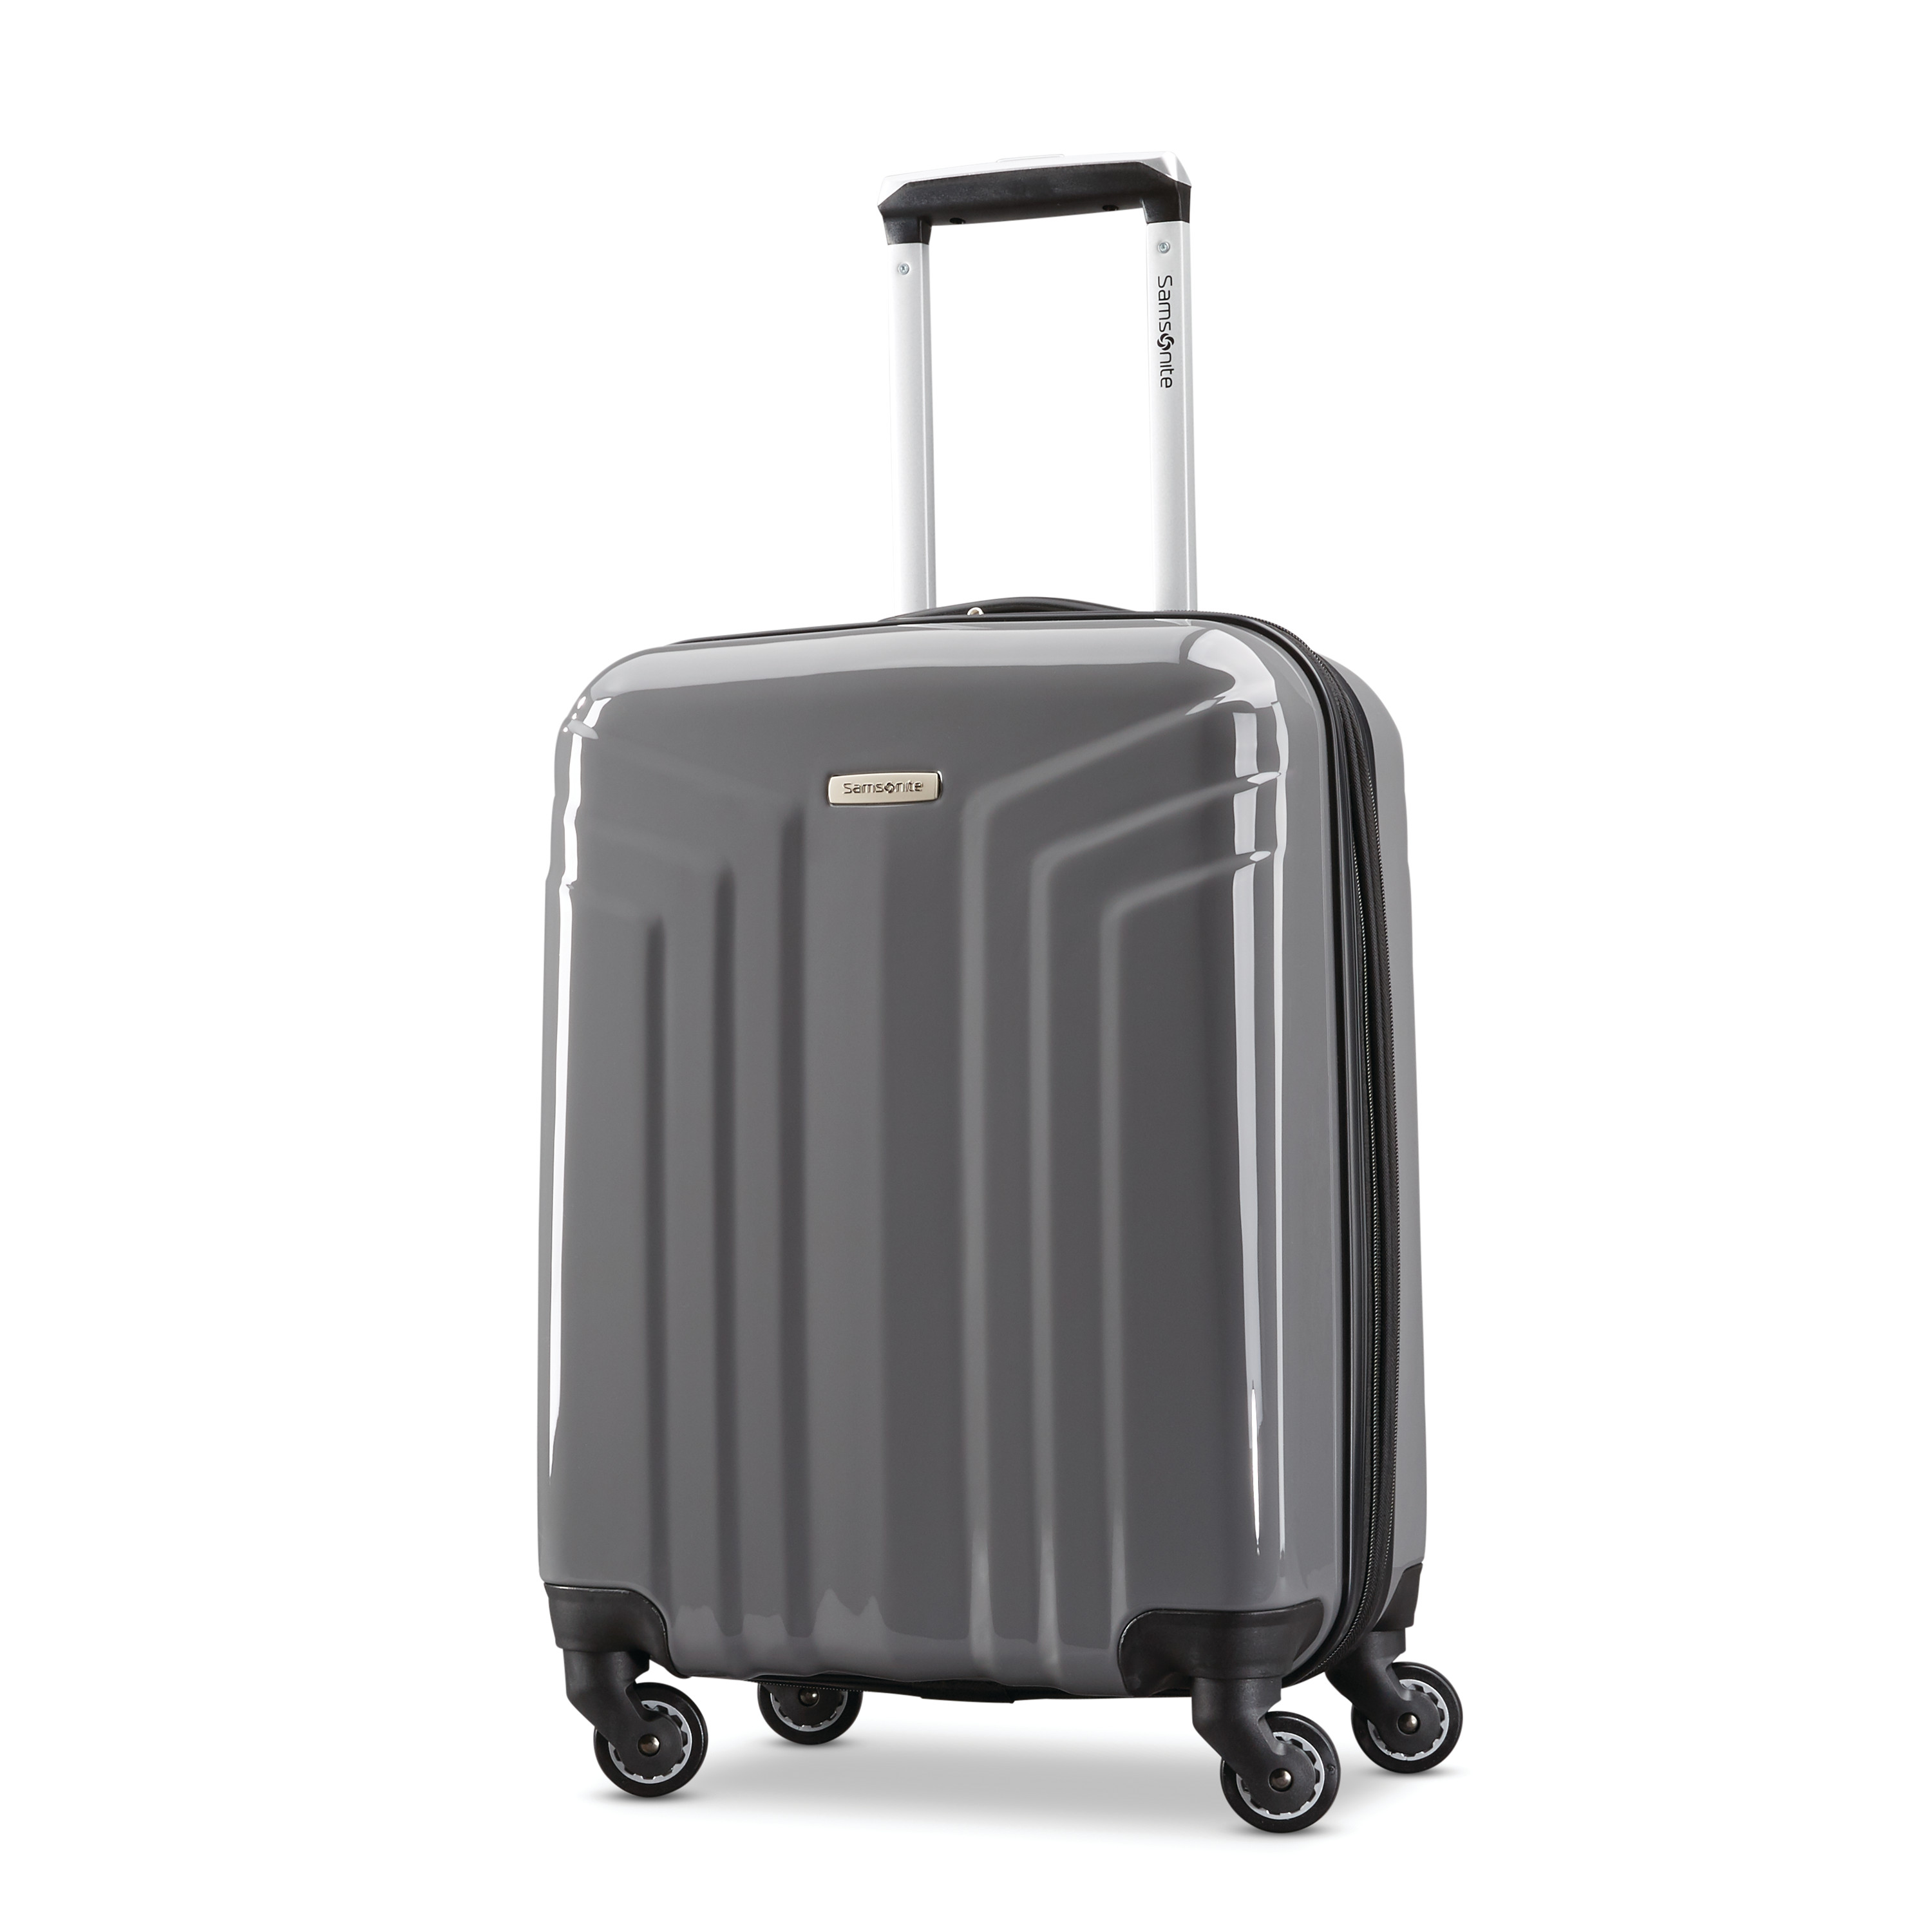 Samsonite-Sparta-19-034-Spinner-Luggage thumbnail 7